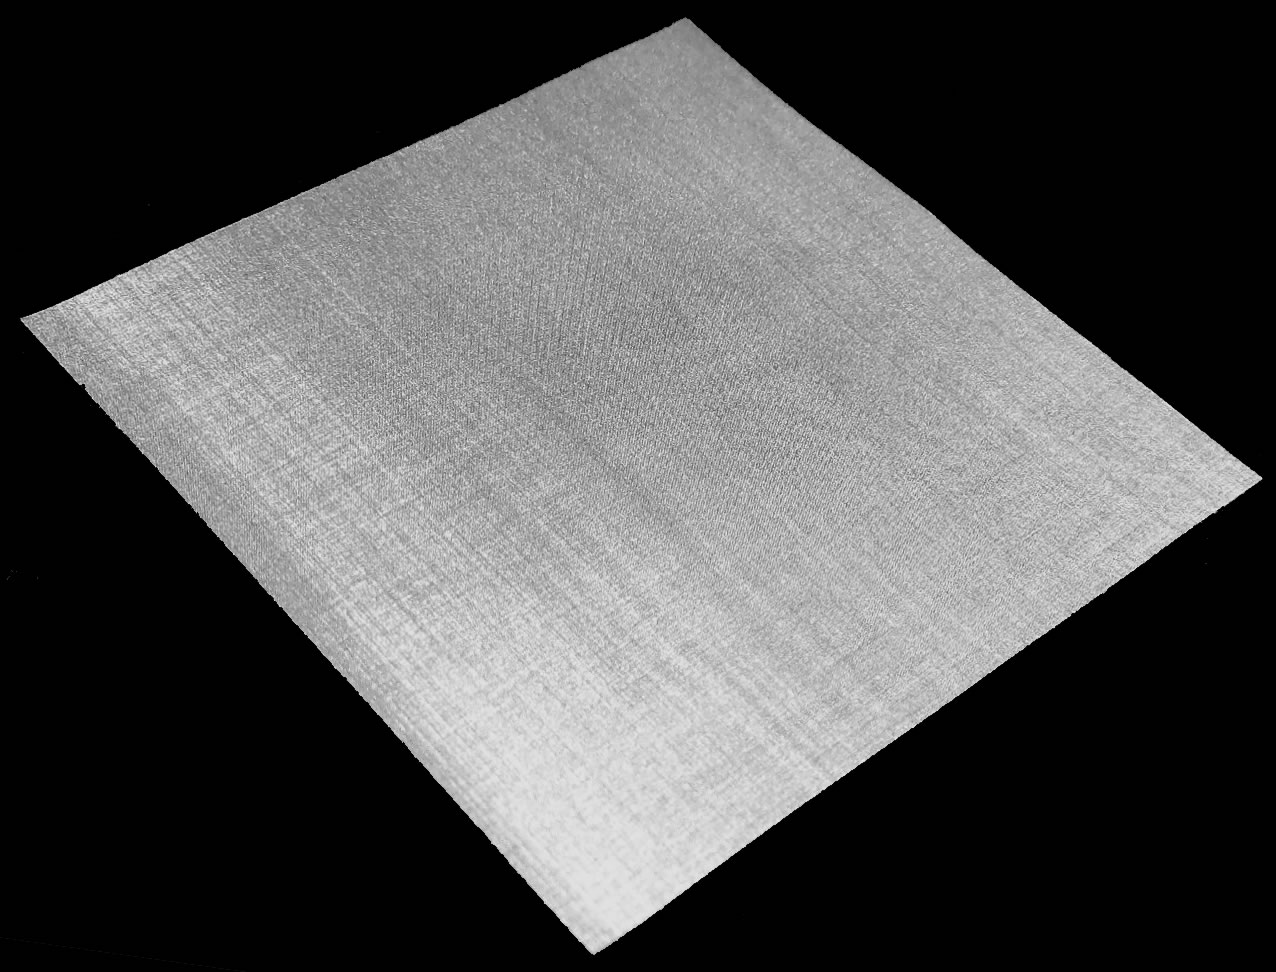 Buy Woven Wire Mesh, 200 mesh at Inoxia Ltd